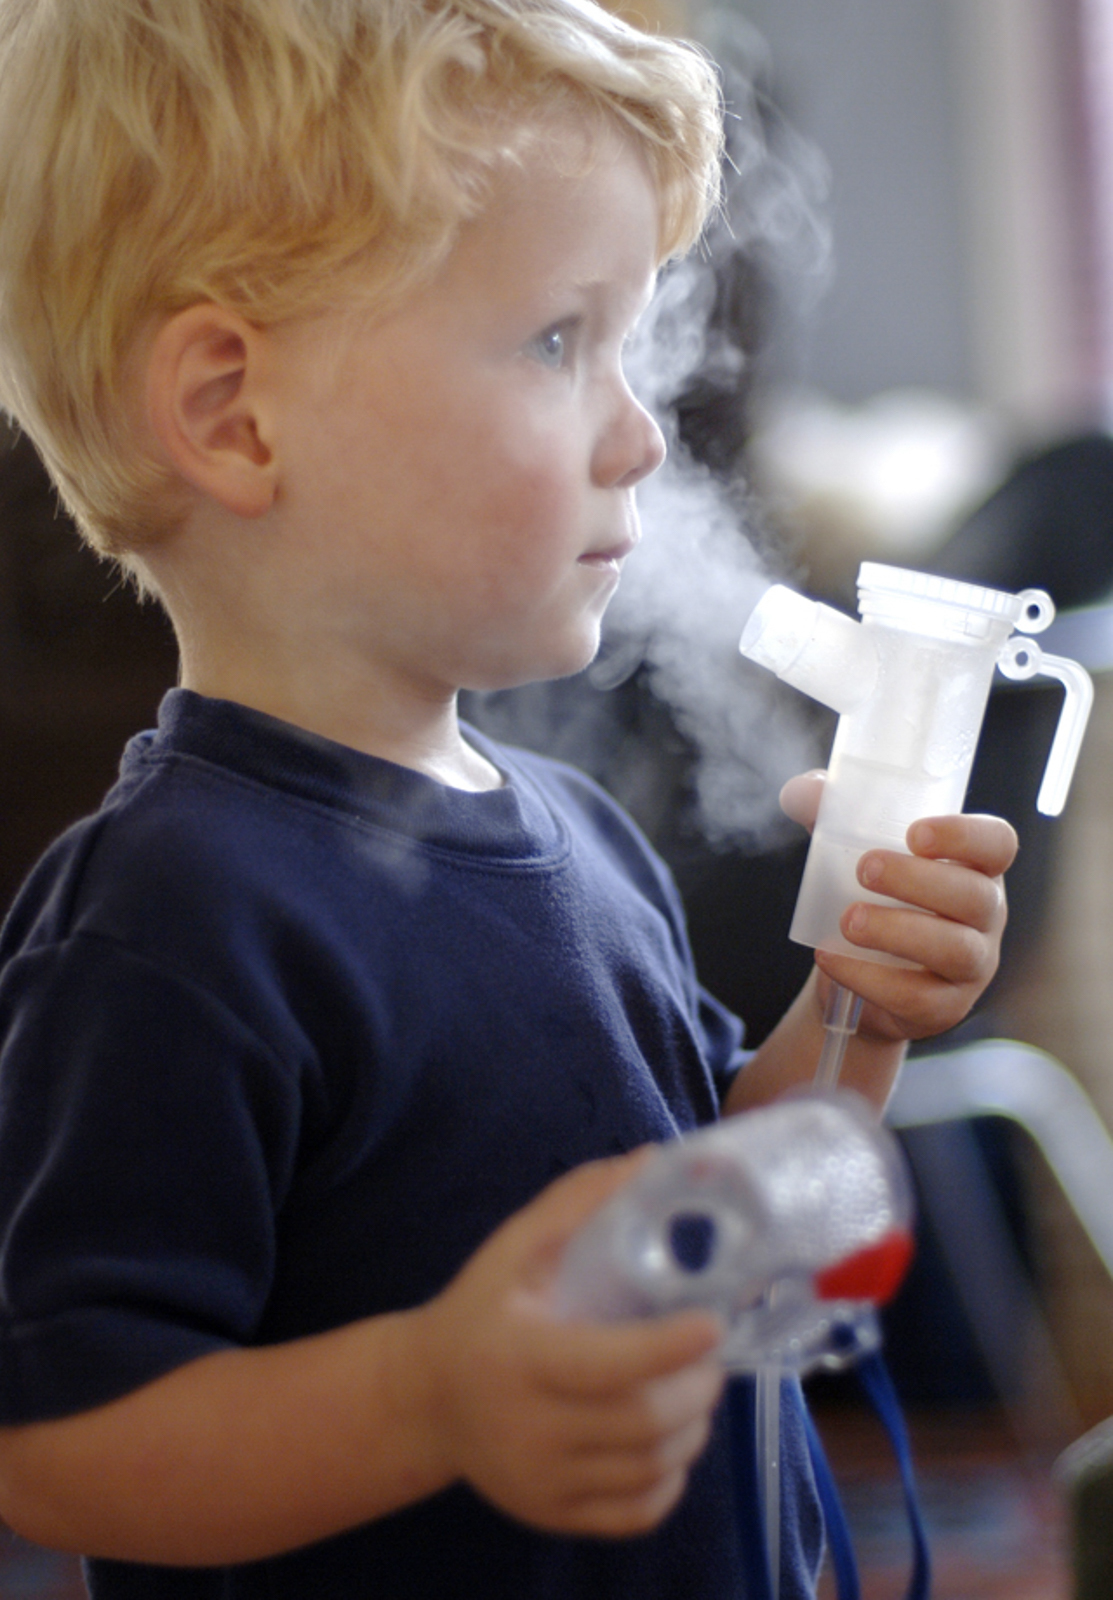 Child holding a breathing aid device